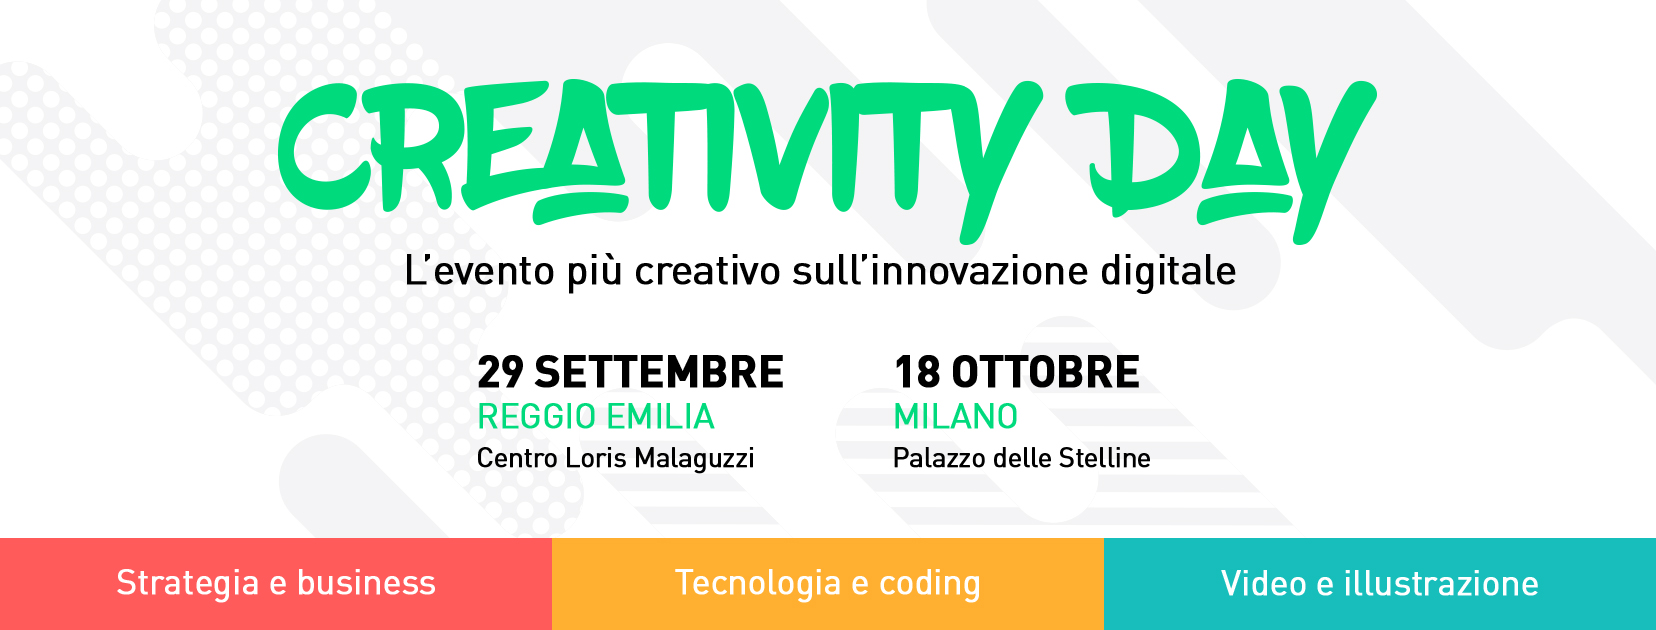 SYNERGIE PARTNER DEL CREATIVITY DAY 2017